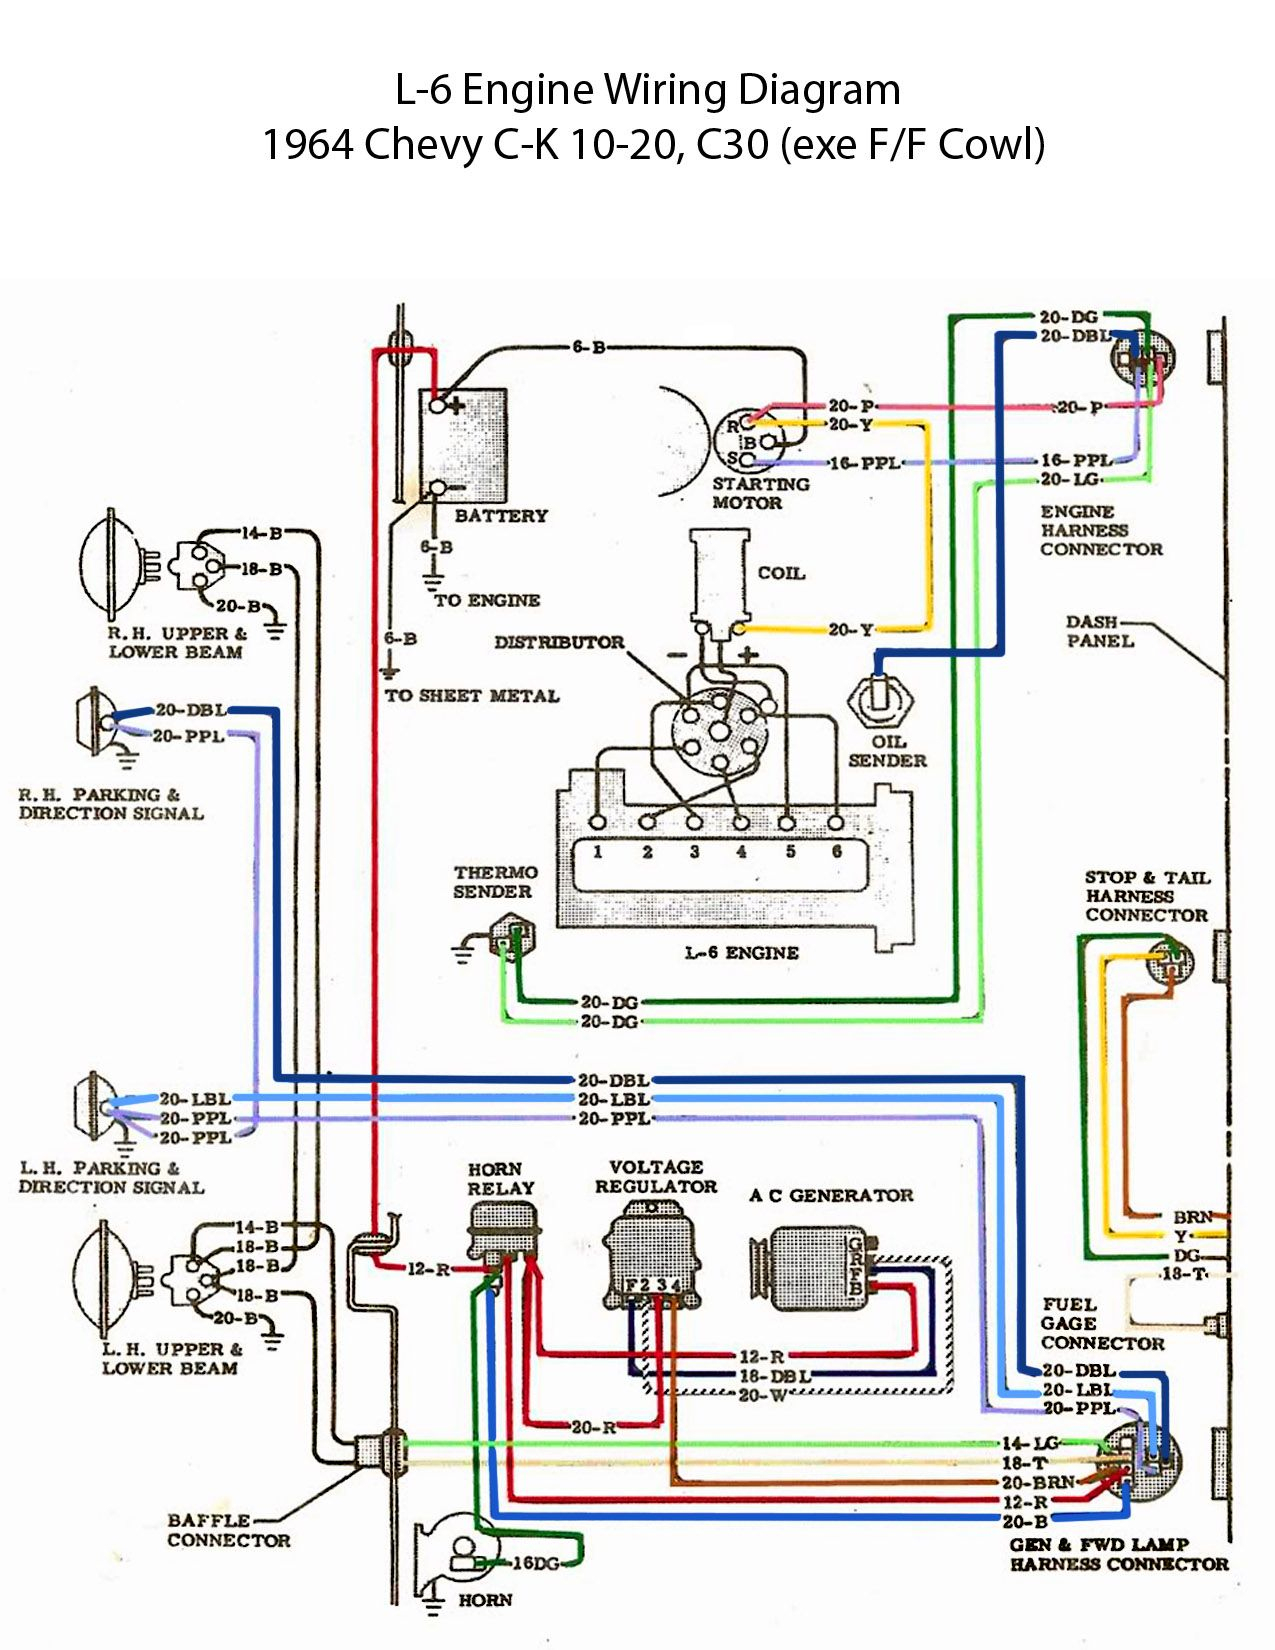 Easy Street Air Ride Wiring Diagram - Wiring Diagrams Hubs - Air Compressor Wiring Diagram